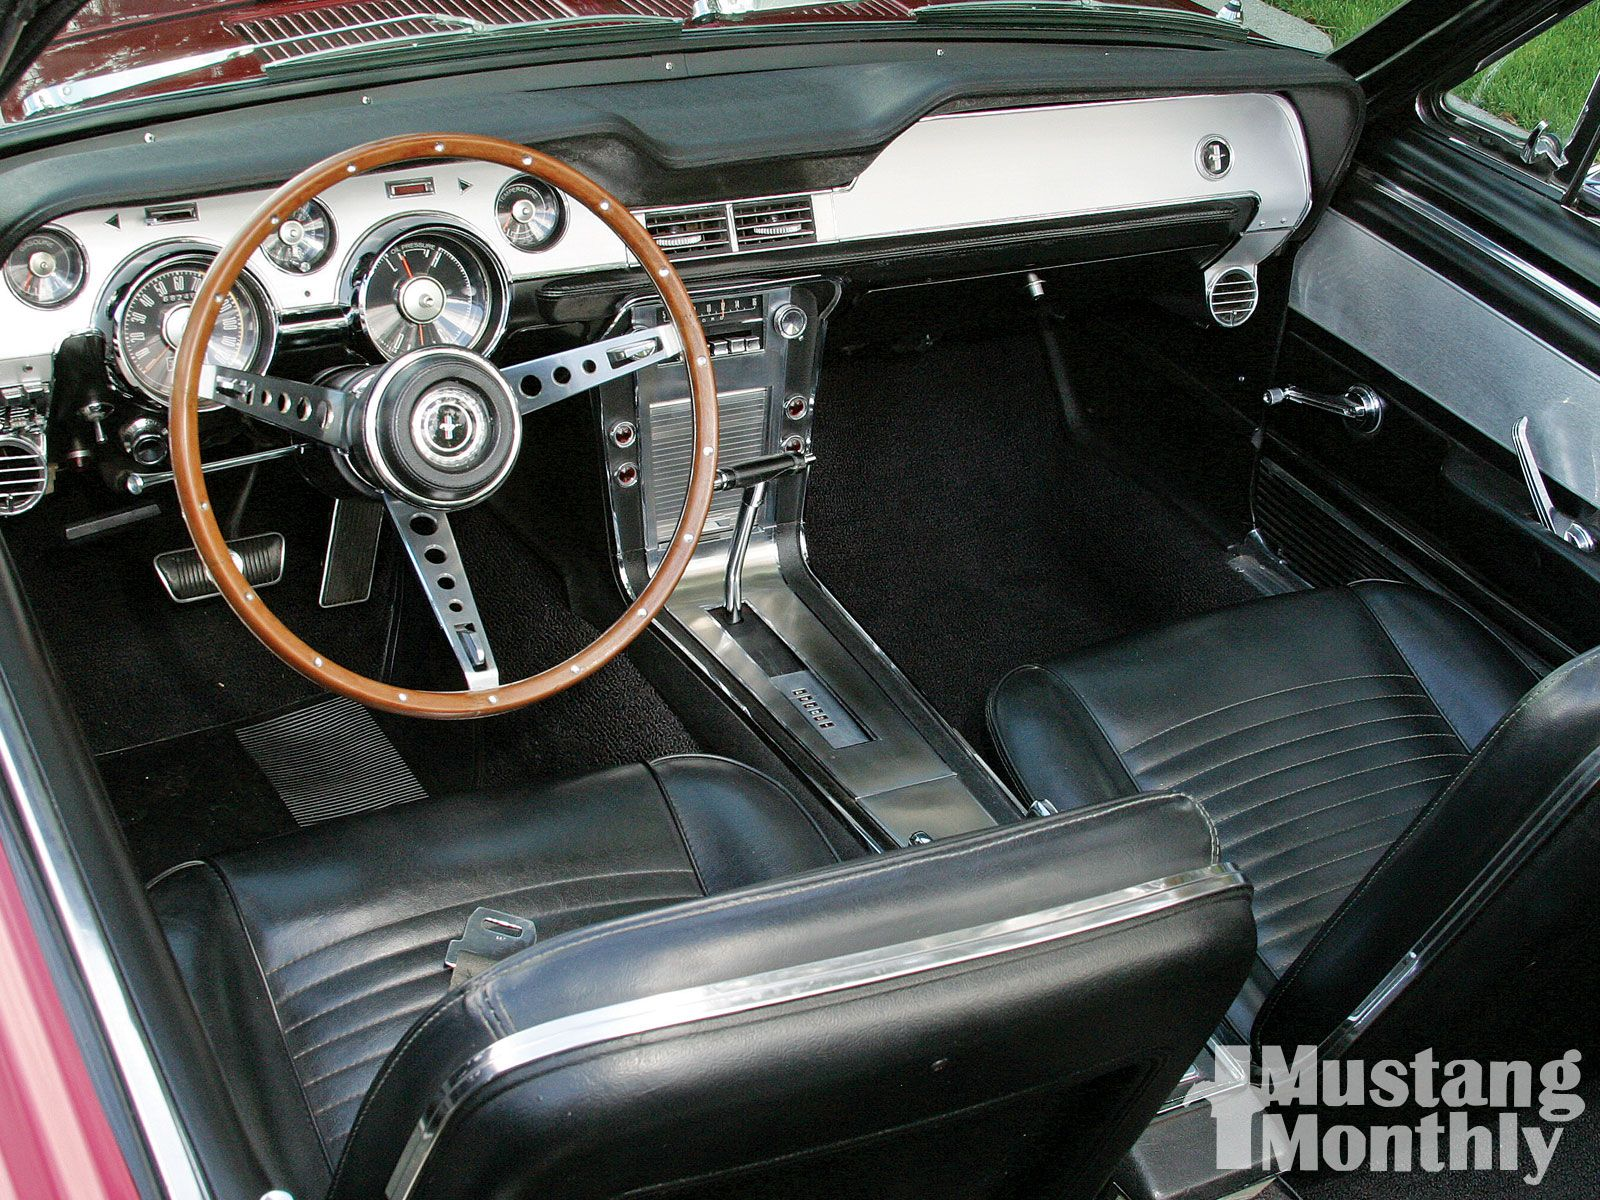 1967 Ford Mustang Convertible Interior Ford Mustang Convertible